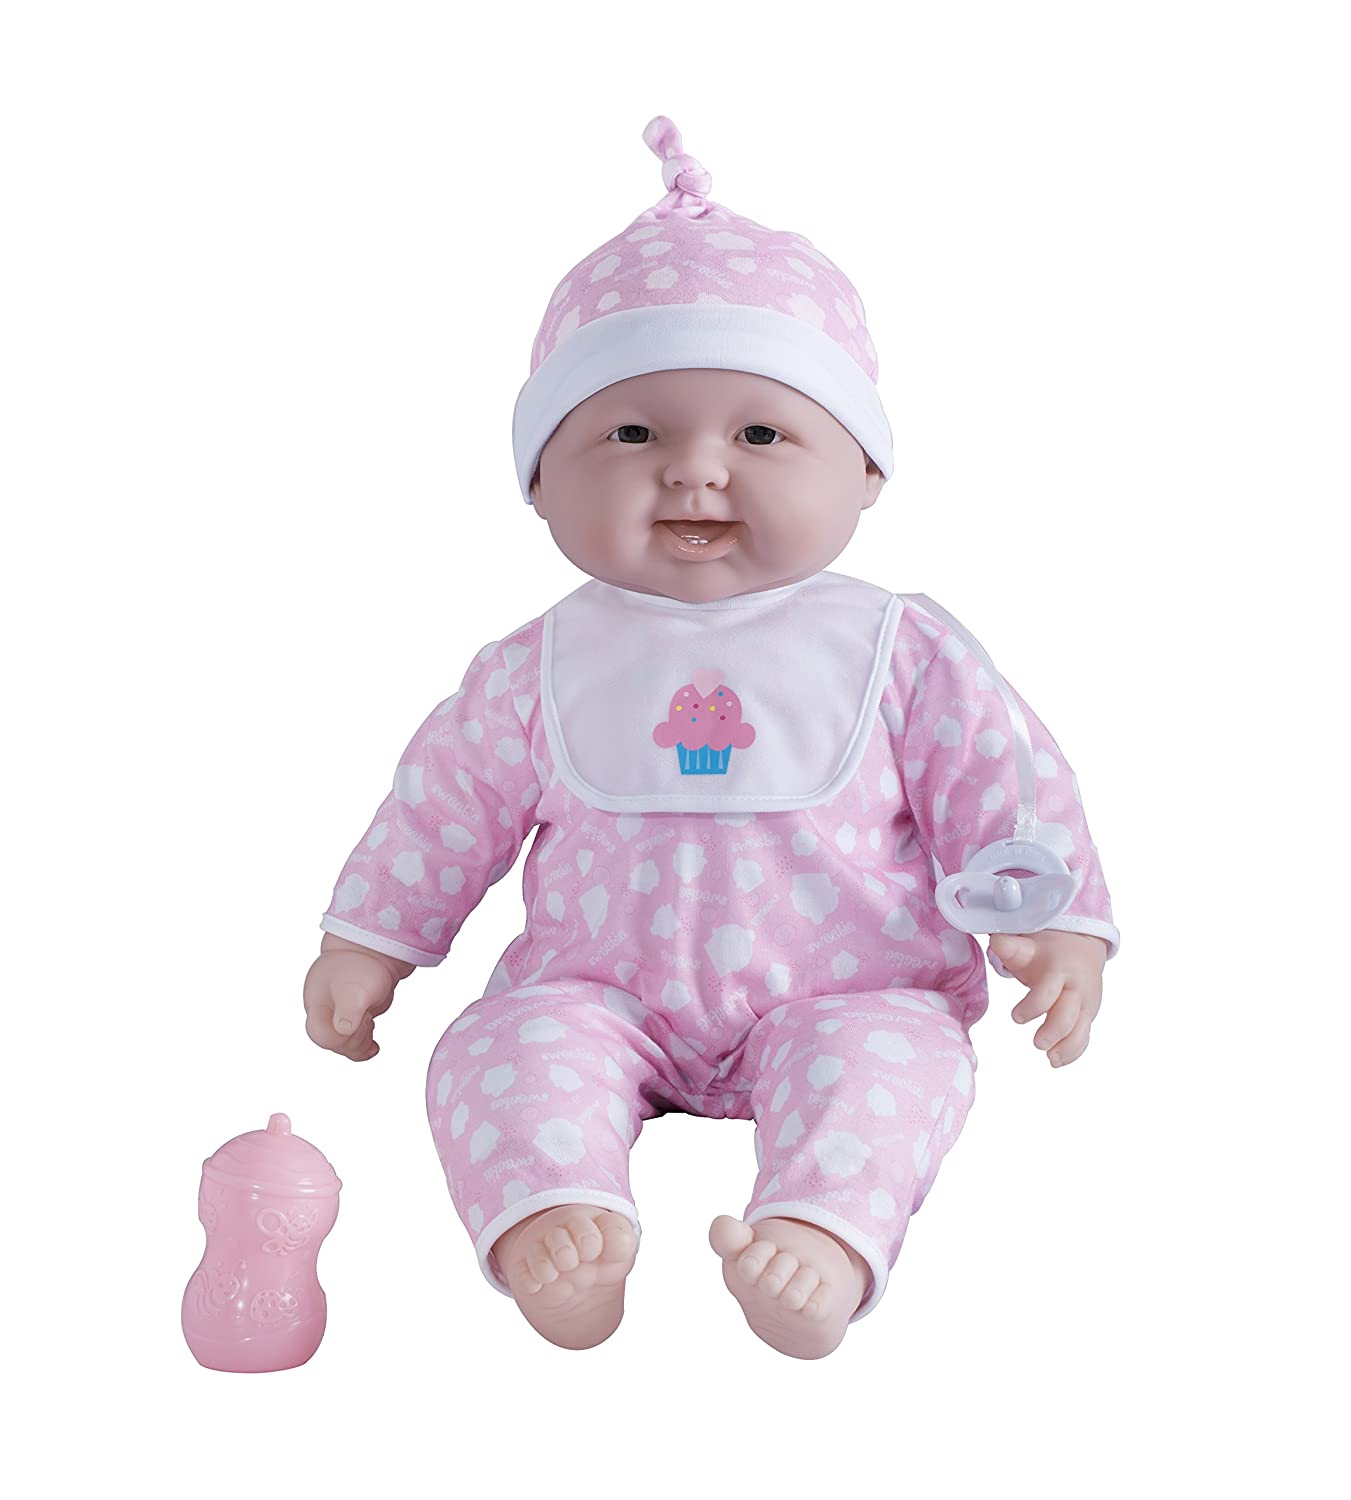 Doll Baby Kids Toddler Toys Girls Boys 20 Inch Soft Bottle